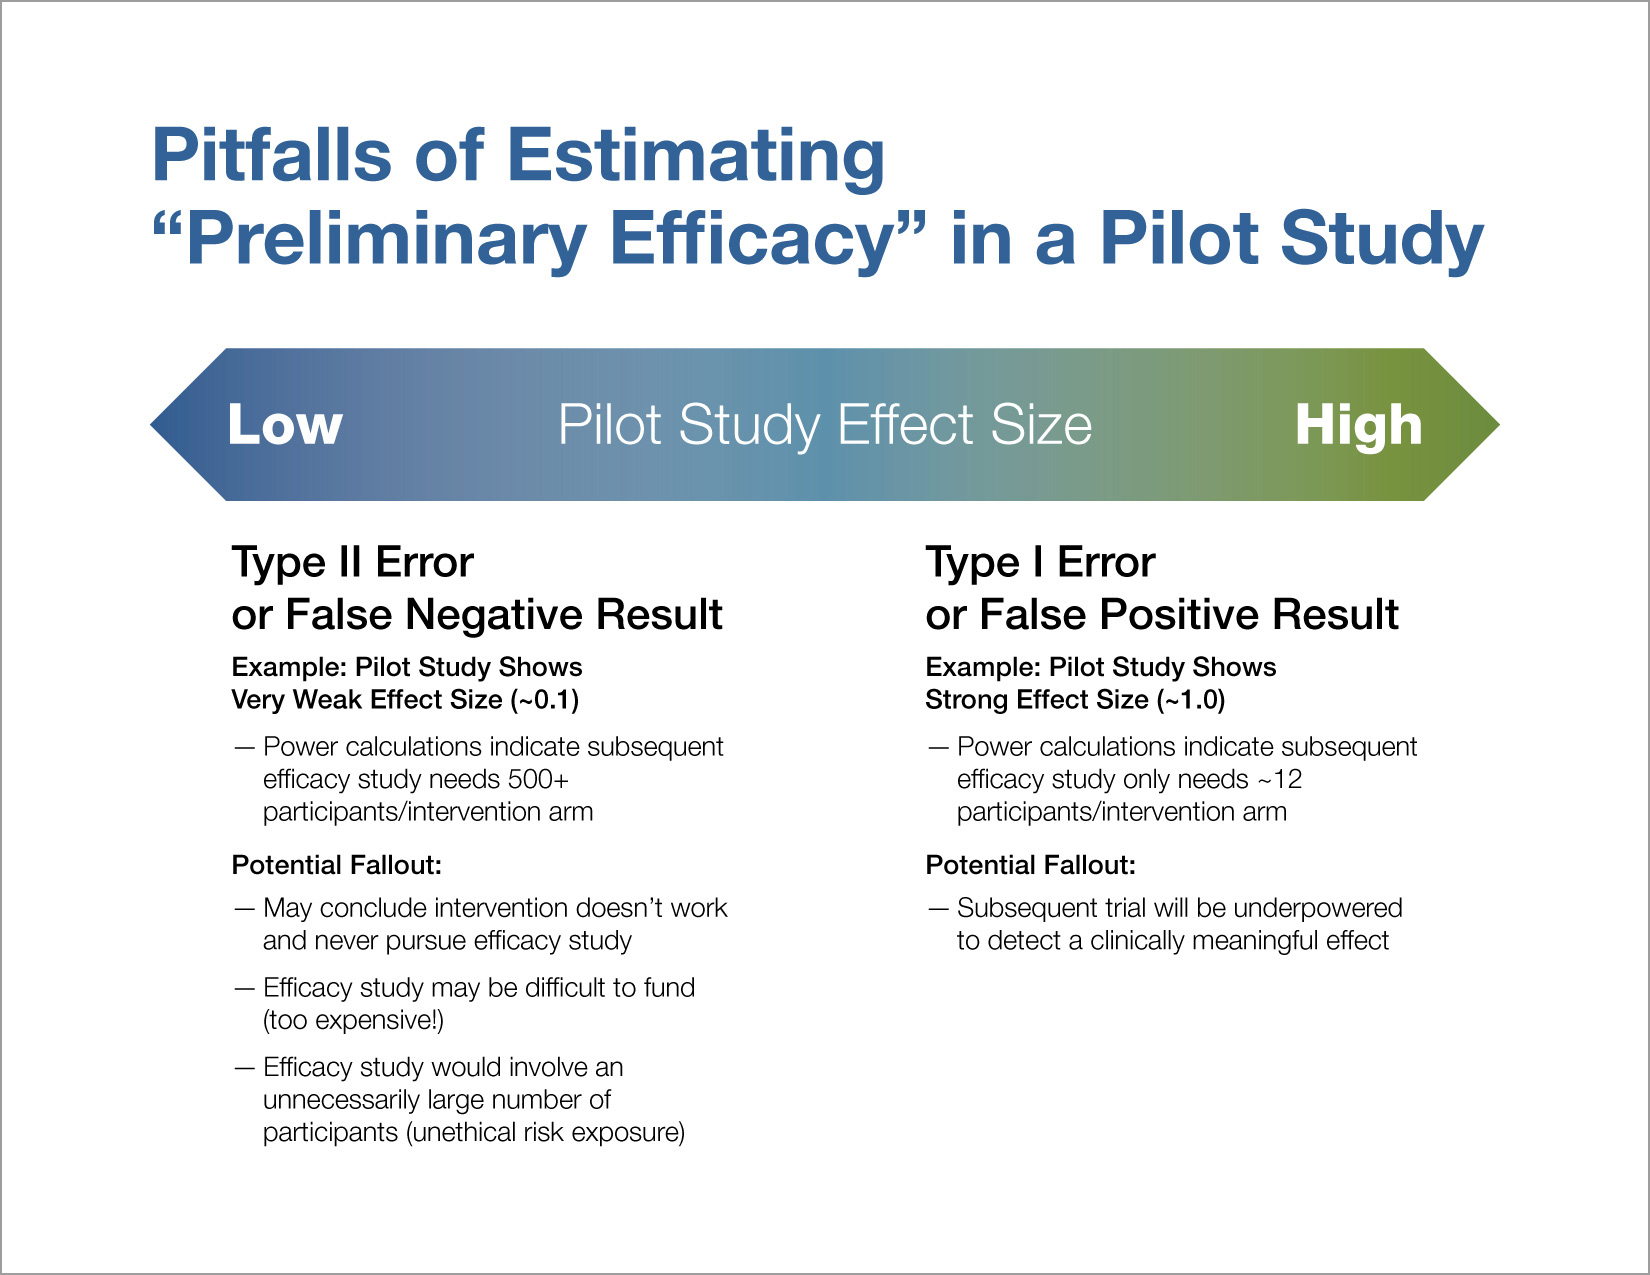 Pitfalls of Estimating Preliminary Efficacy in a Pilot Study